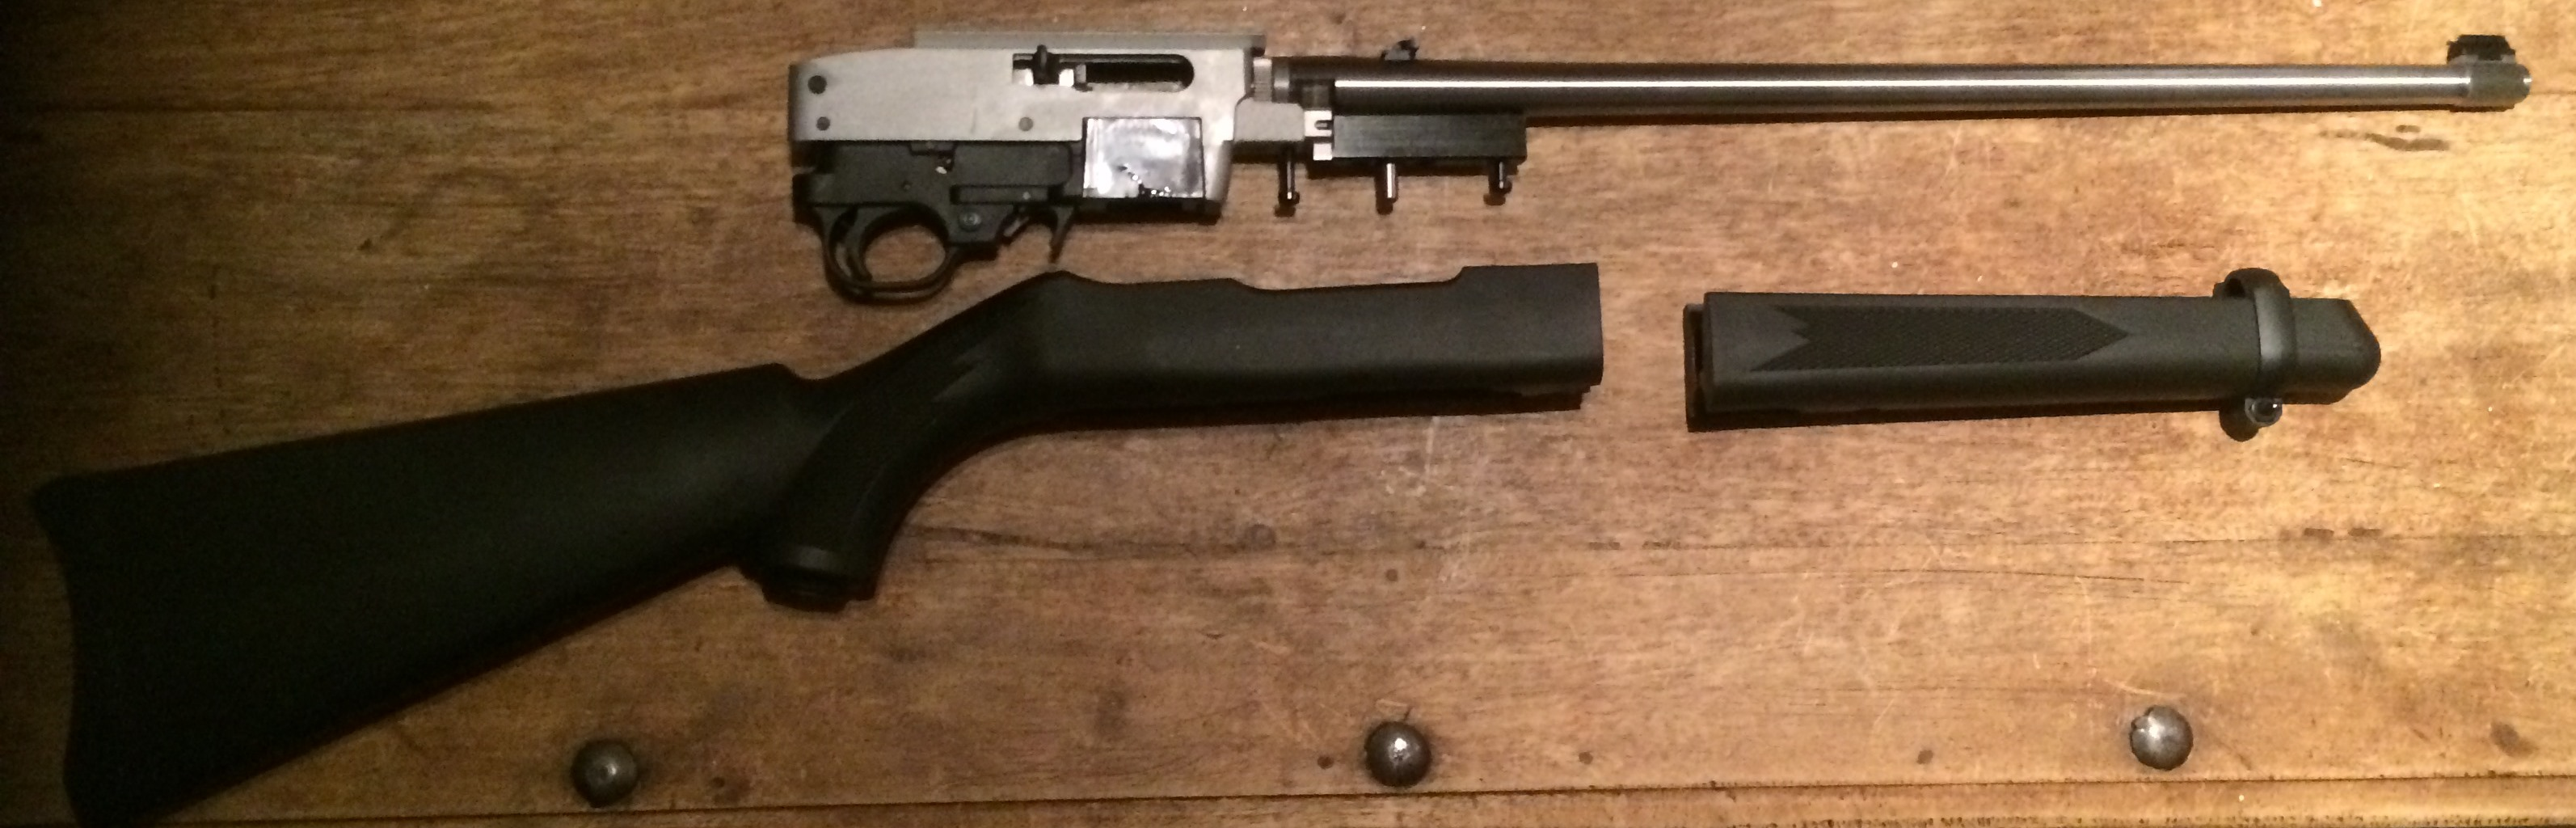 Ruger 10/22 takedown wooden stock conversion (picture heavy)